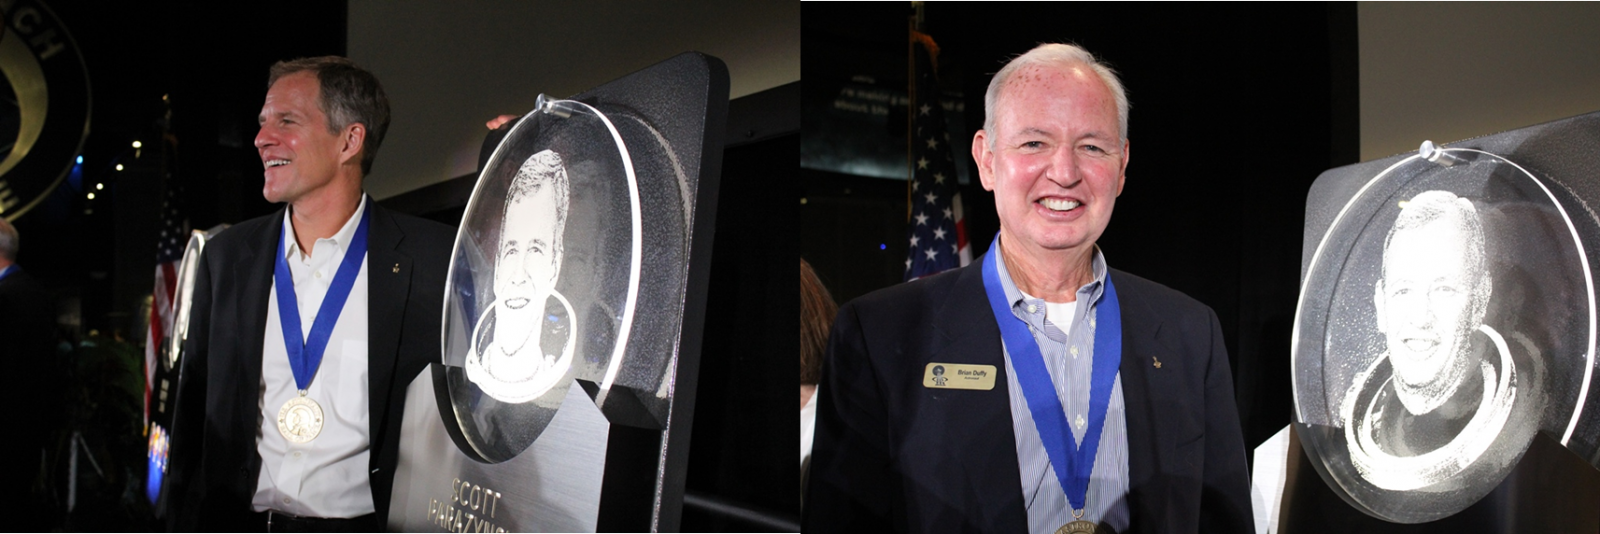 Former NASA astronauts Scott Parazynski (left) and Brian Duffy (right) were inducted into the U.S. Astronaut Hall of Fame on Saturday, May 14. Photo Credit: Jason Rhian / SpaceFlight Insider